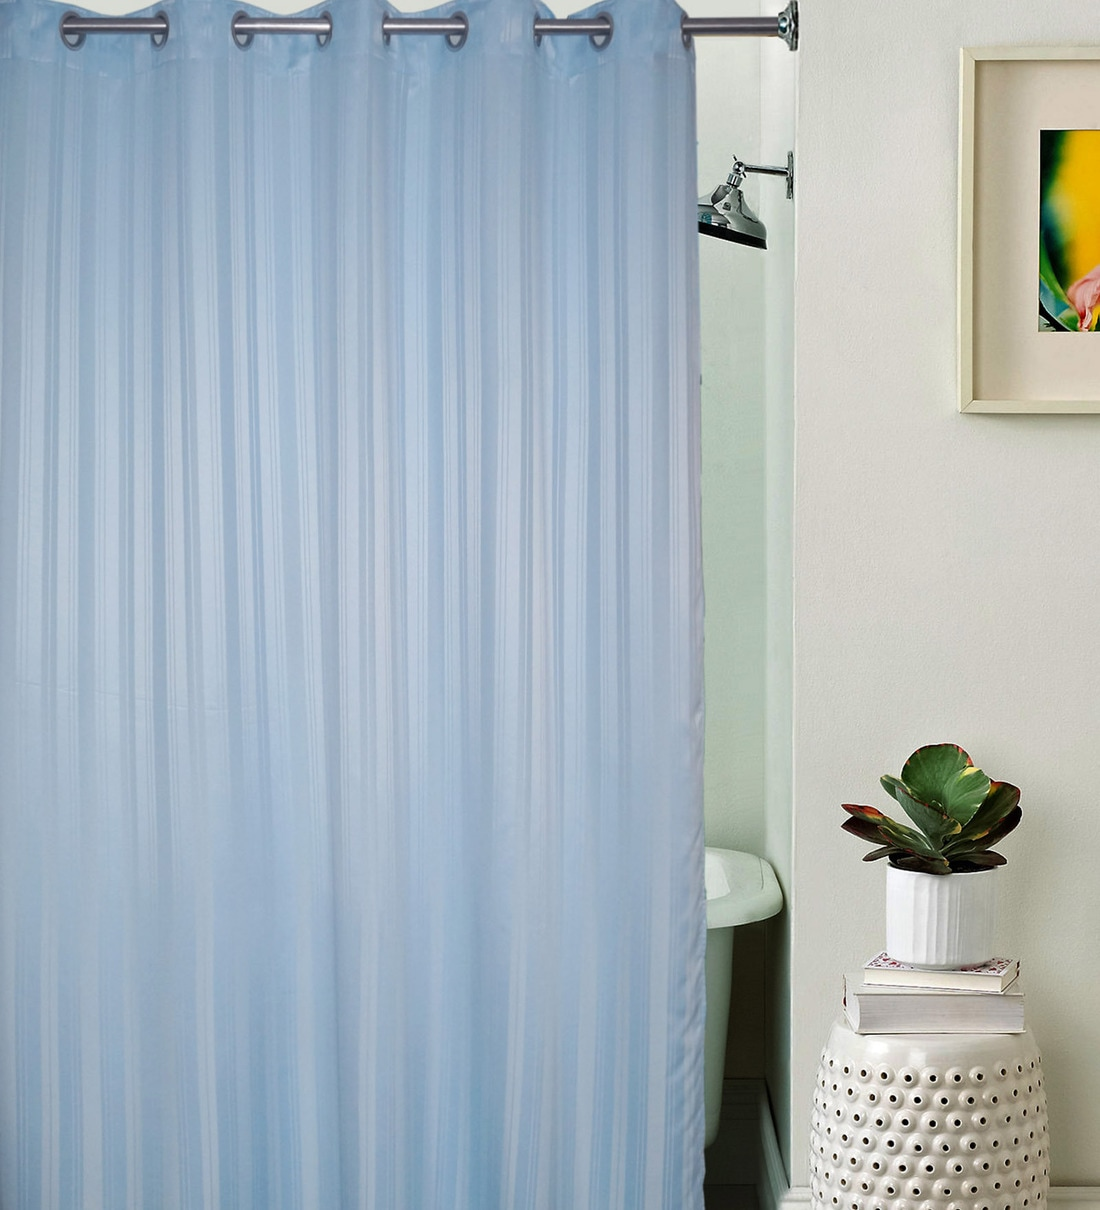 sky blue striped pattern polyester shower curtain